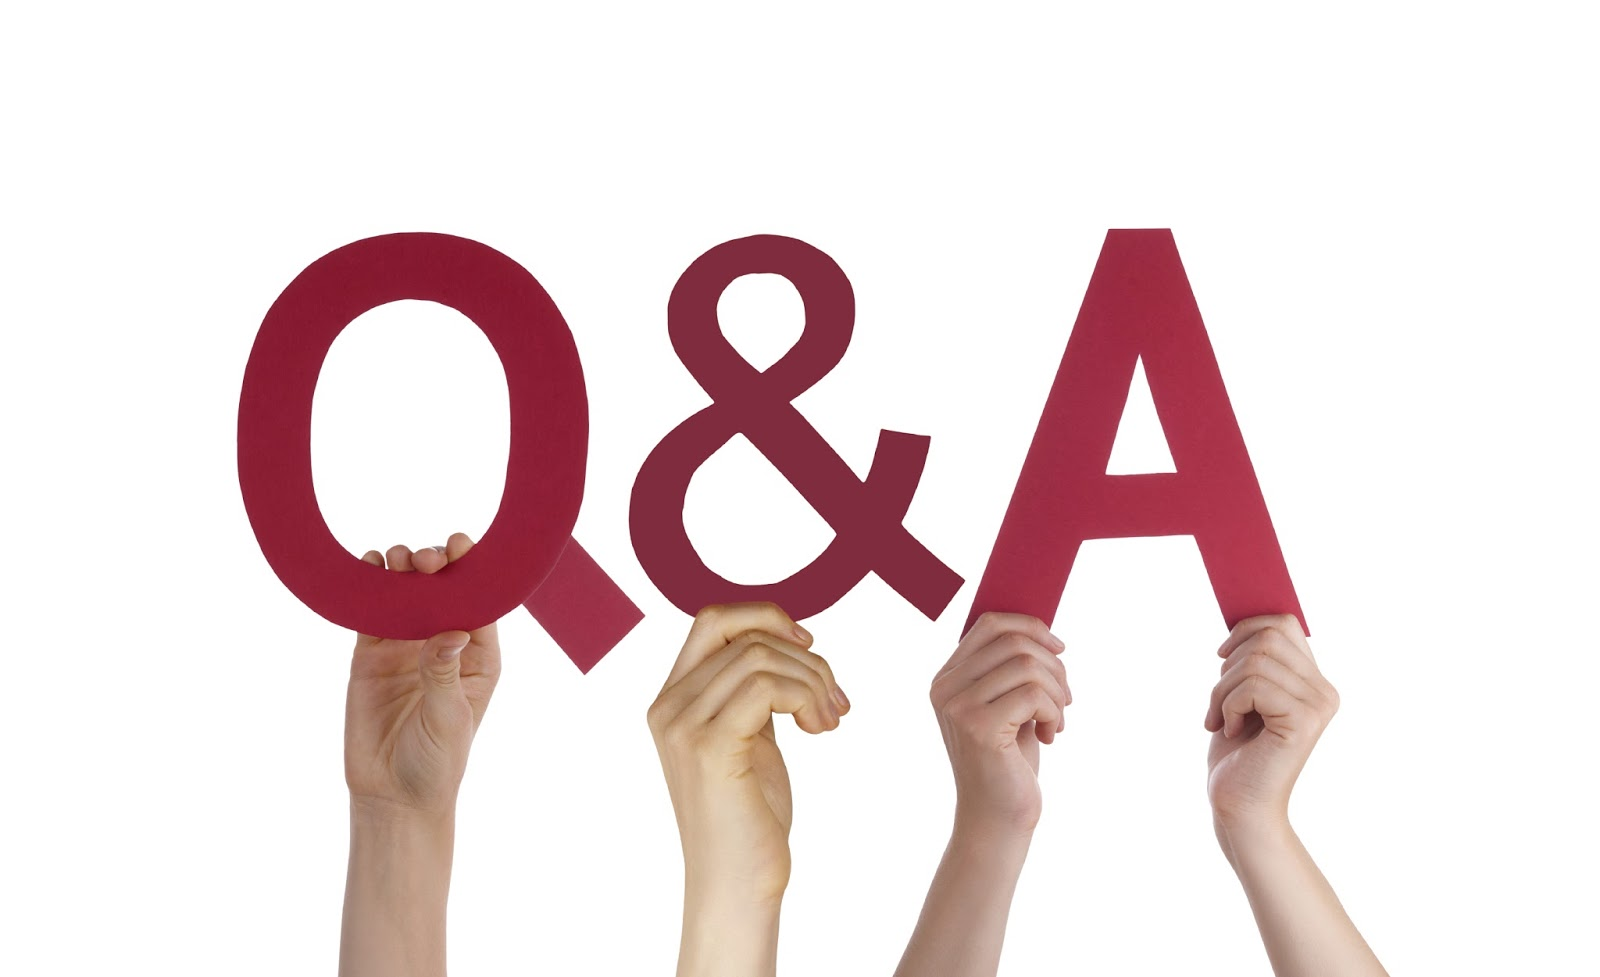 Q+A Time!